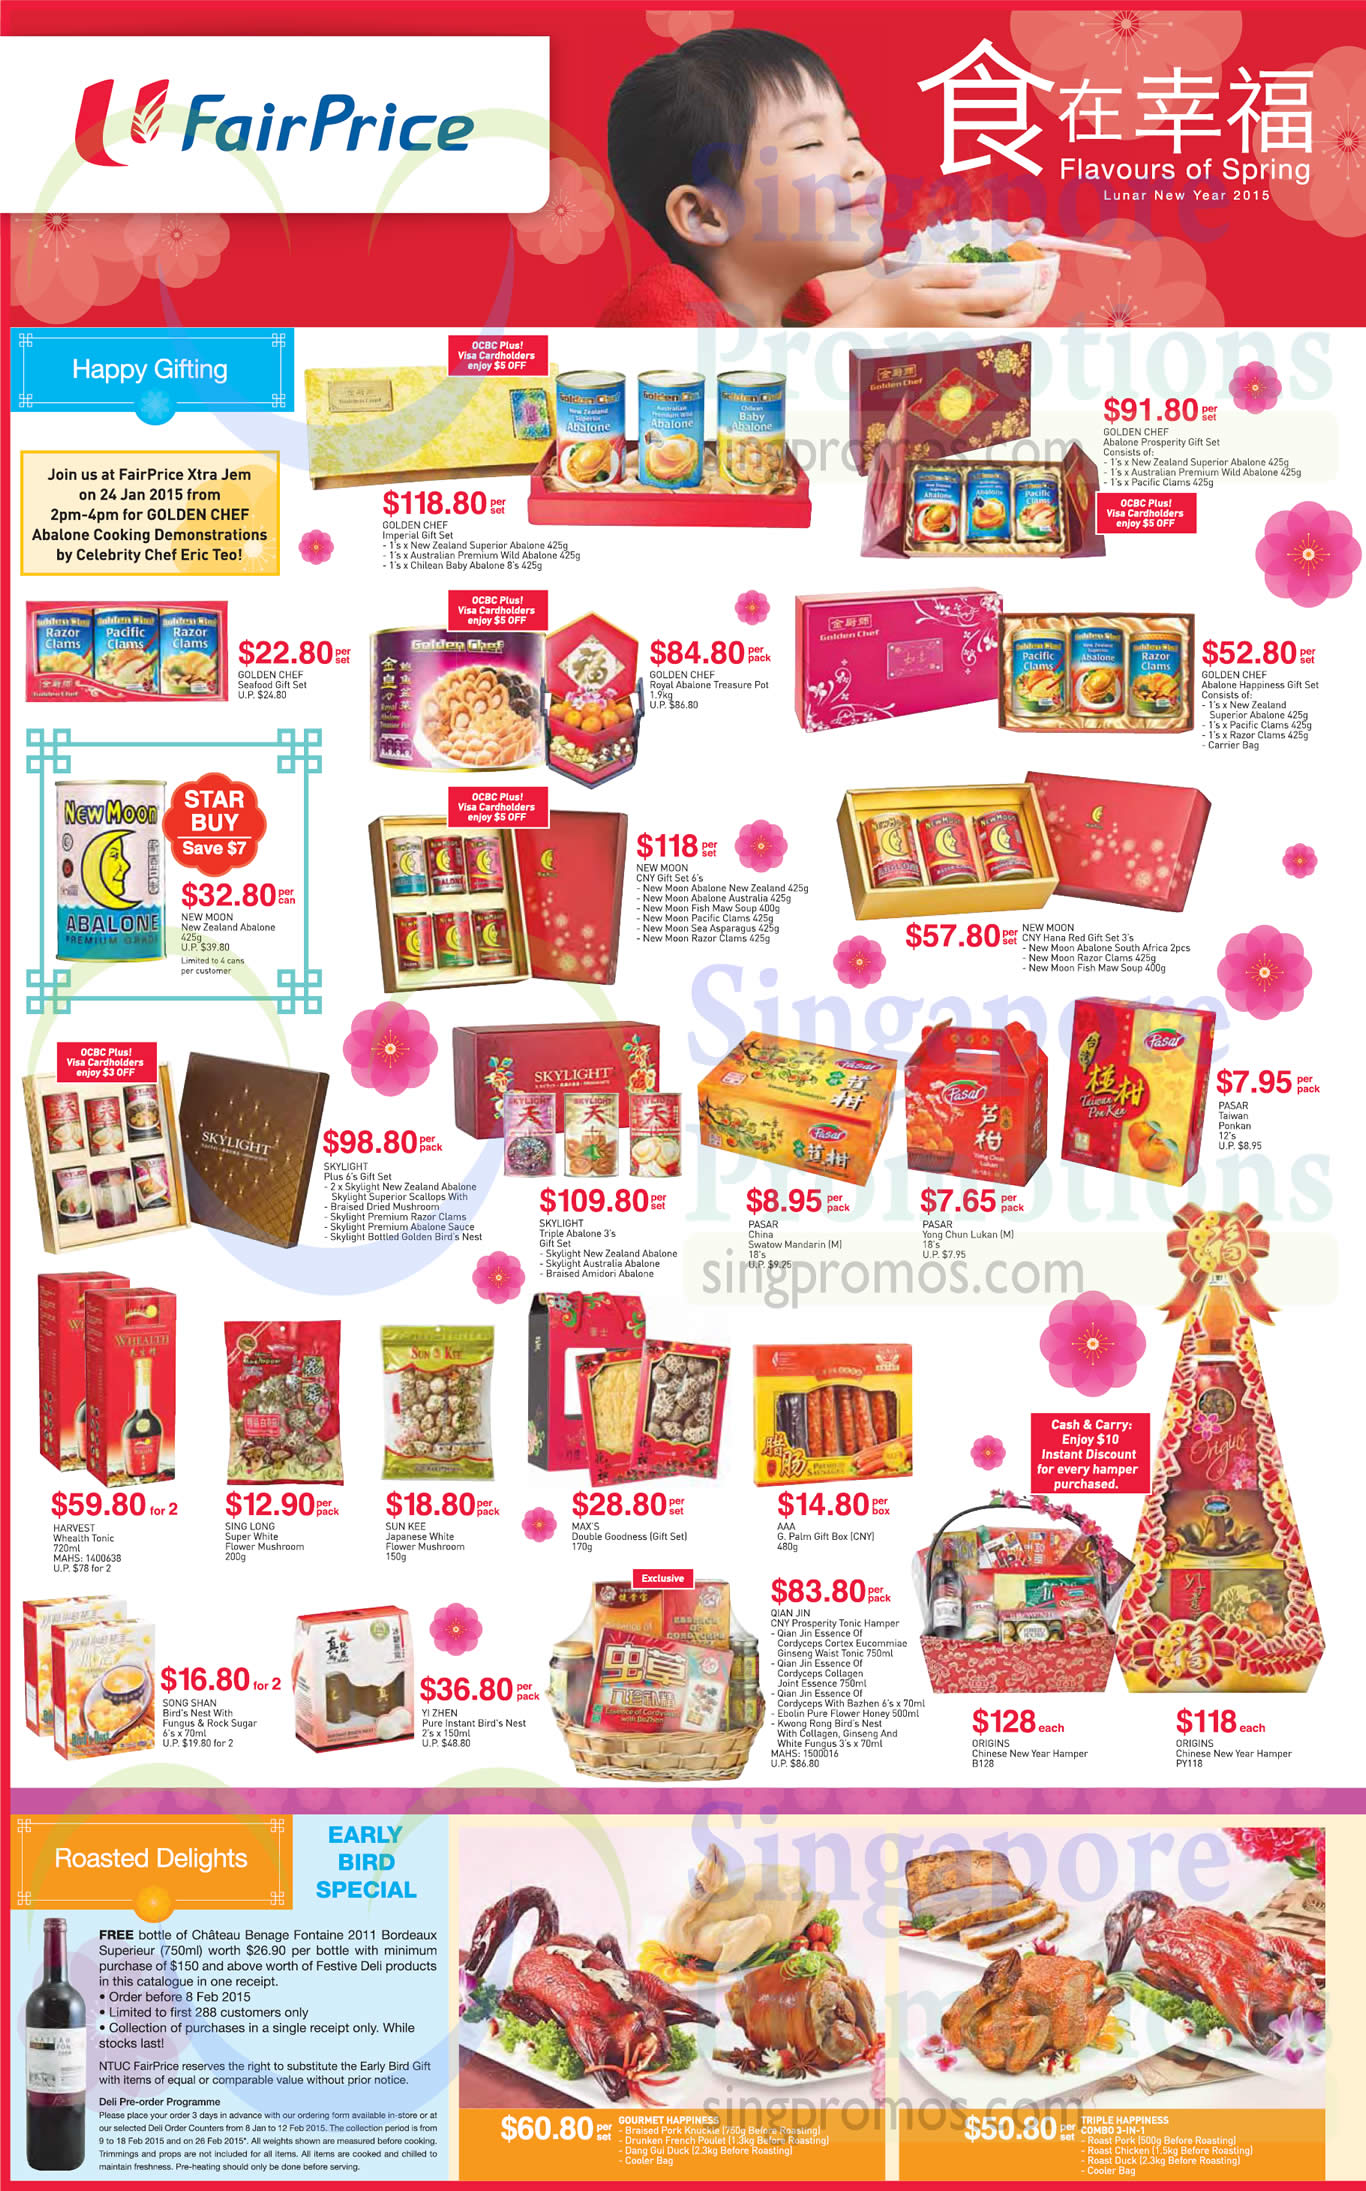 CNY Gift Sets, Hampers, Abalone, Seafood, Bird Nest, Essence of Cordyceps, Qian Jin, Golden Chef, New Moon